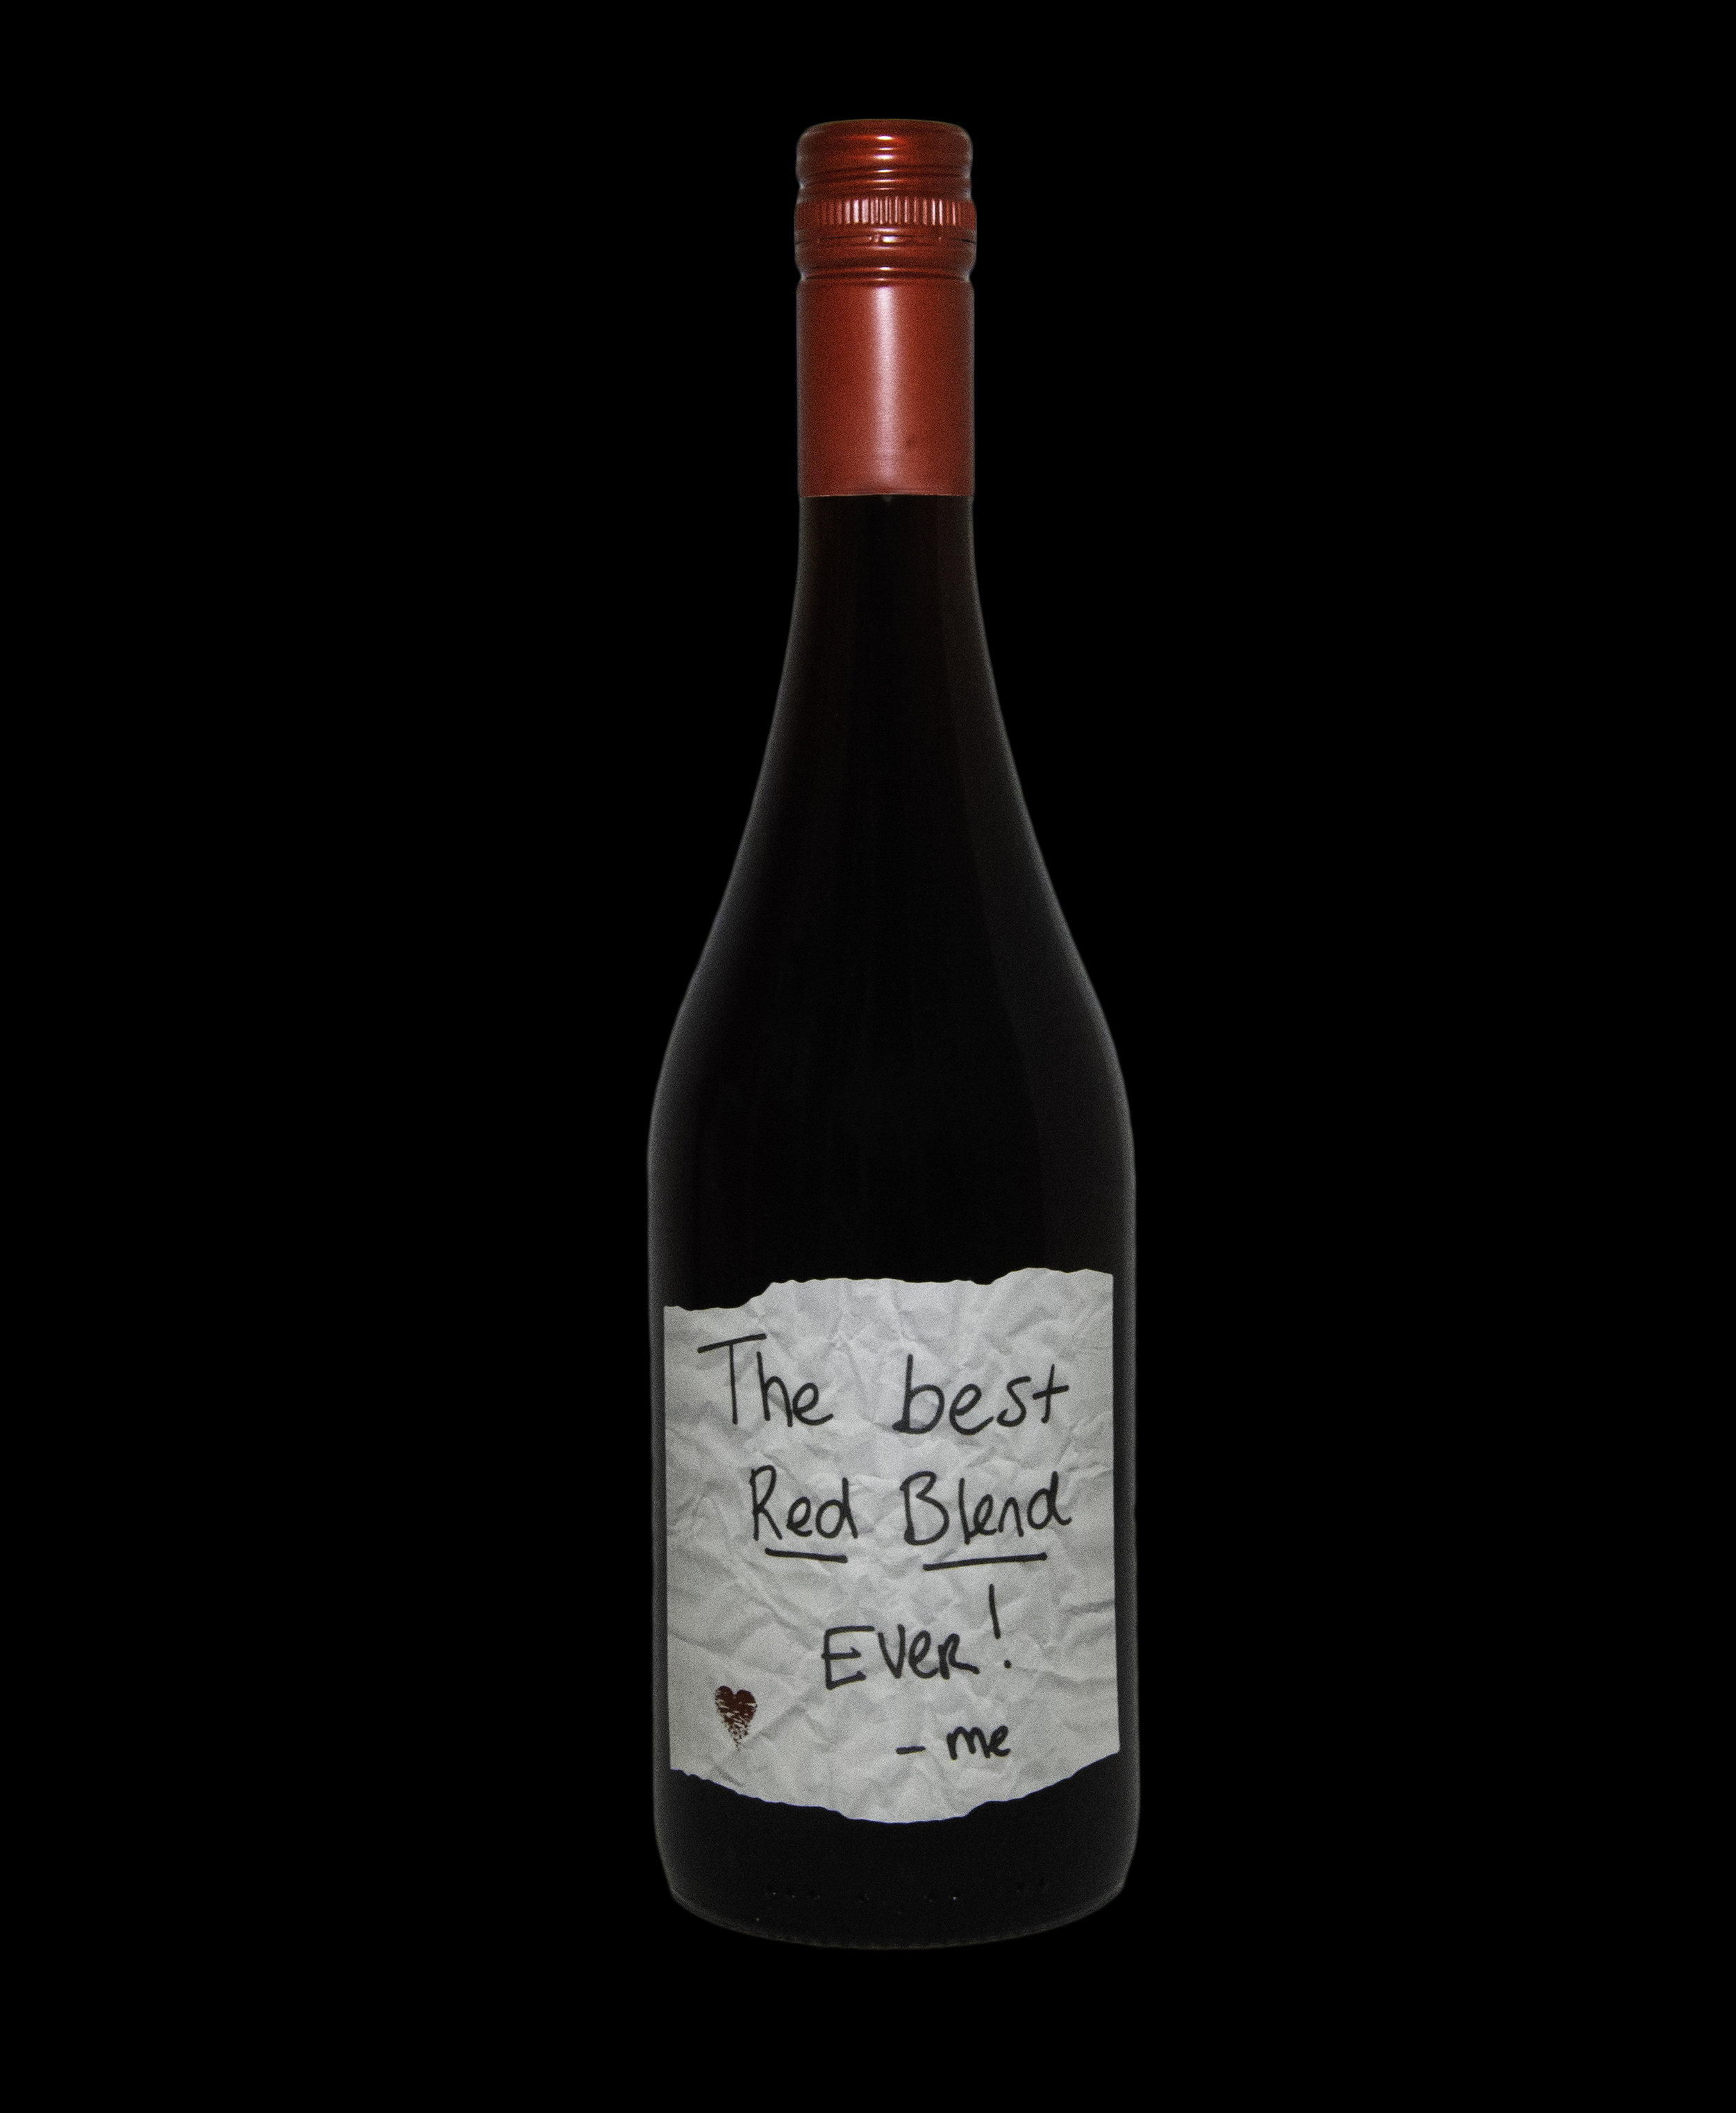 The Best Red Blend Ever